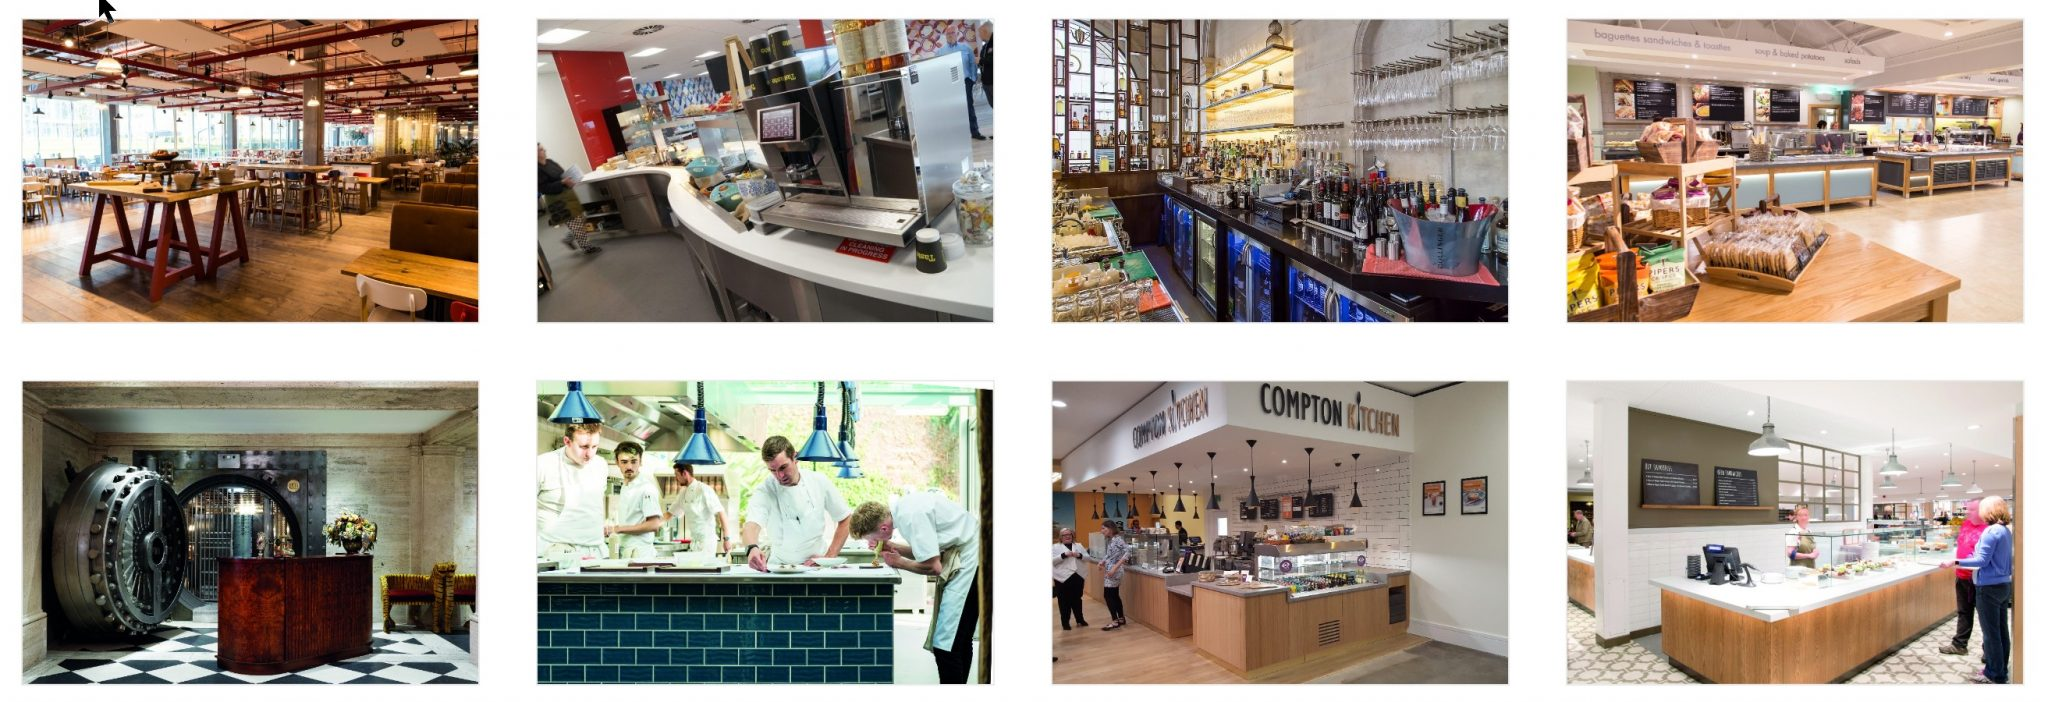 foodservice gallery showcase